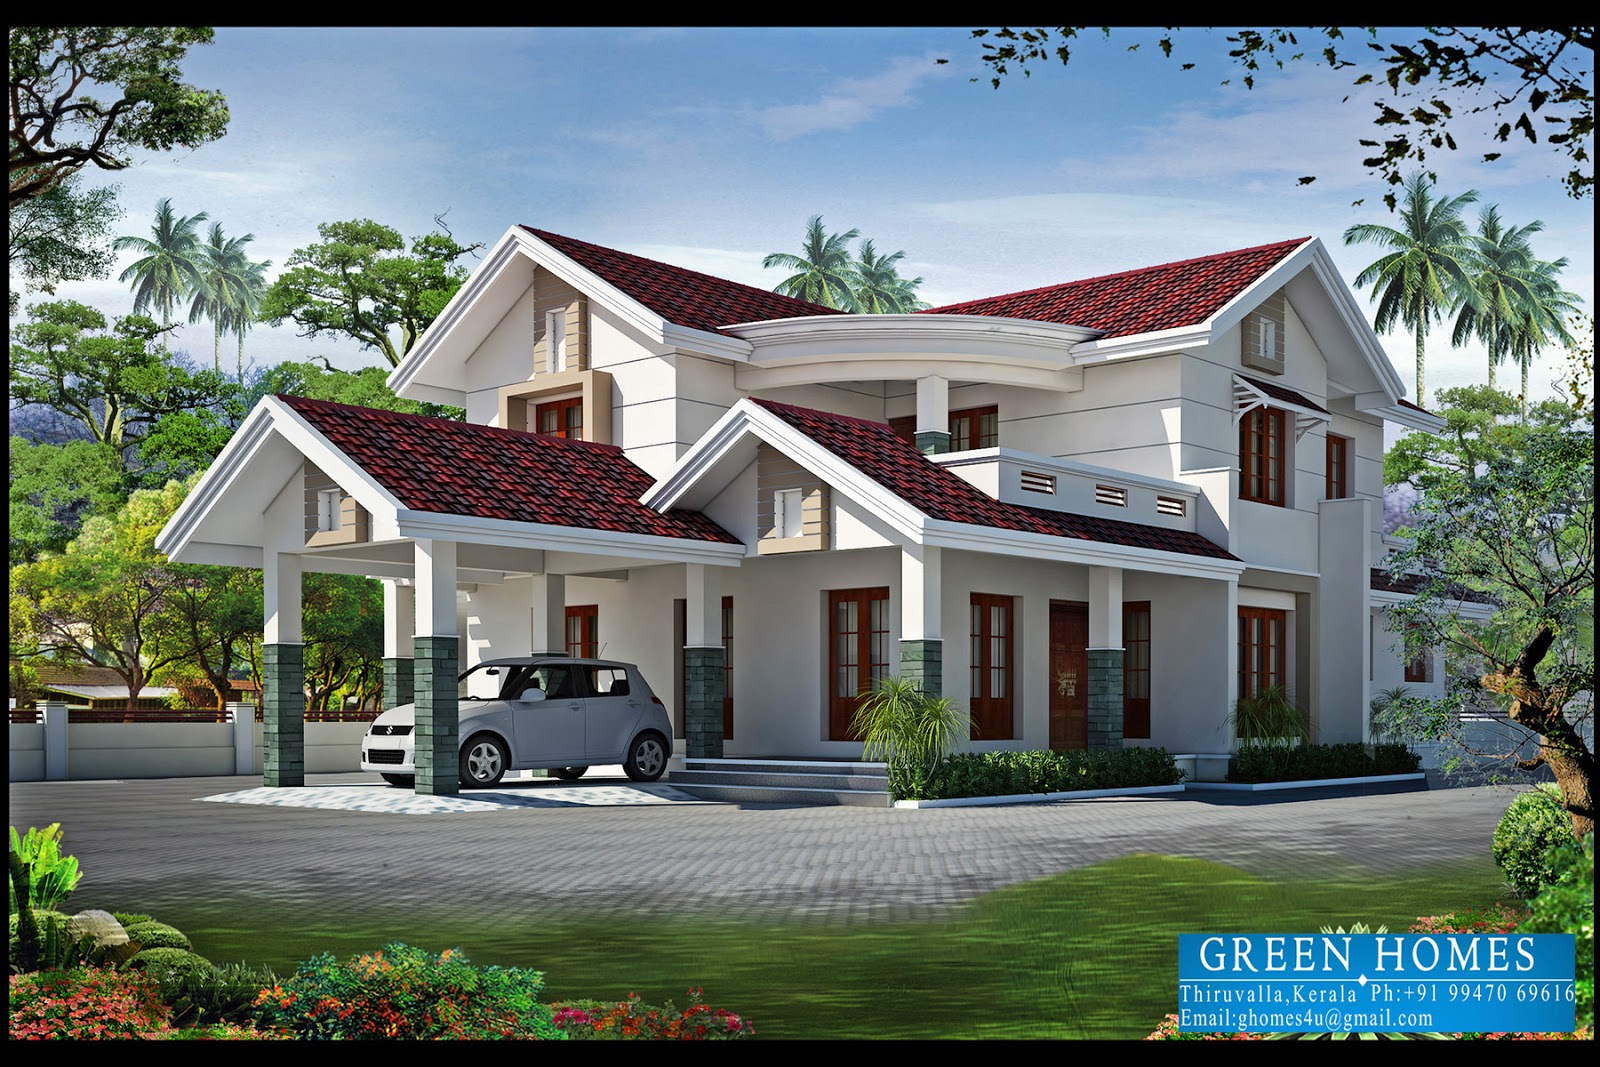 Green Homes 4BHK Kerala Home Design 2550